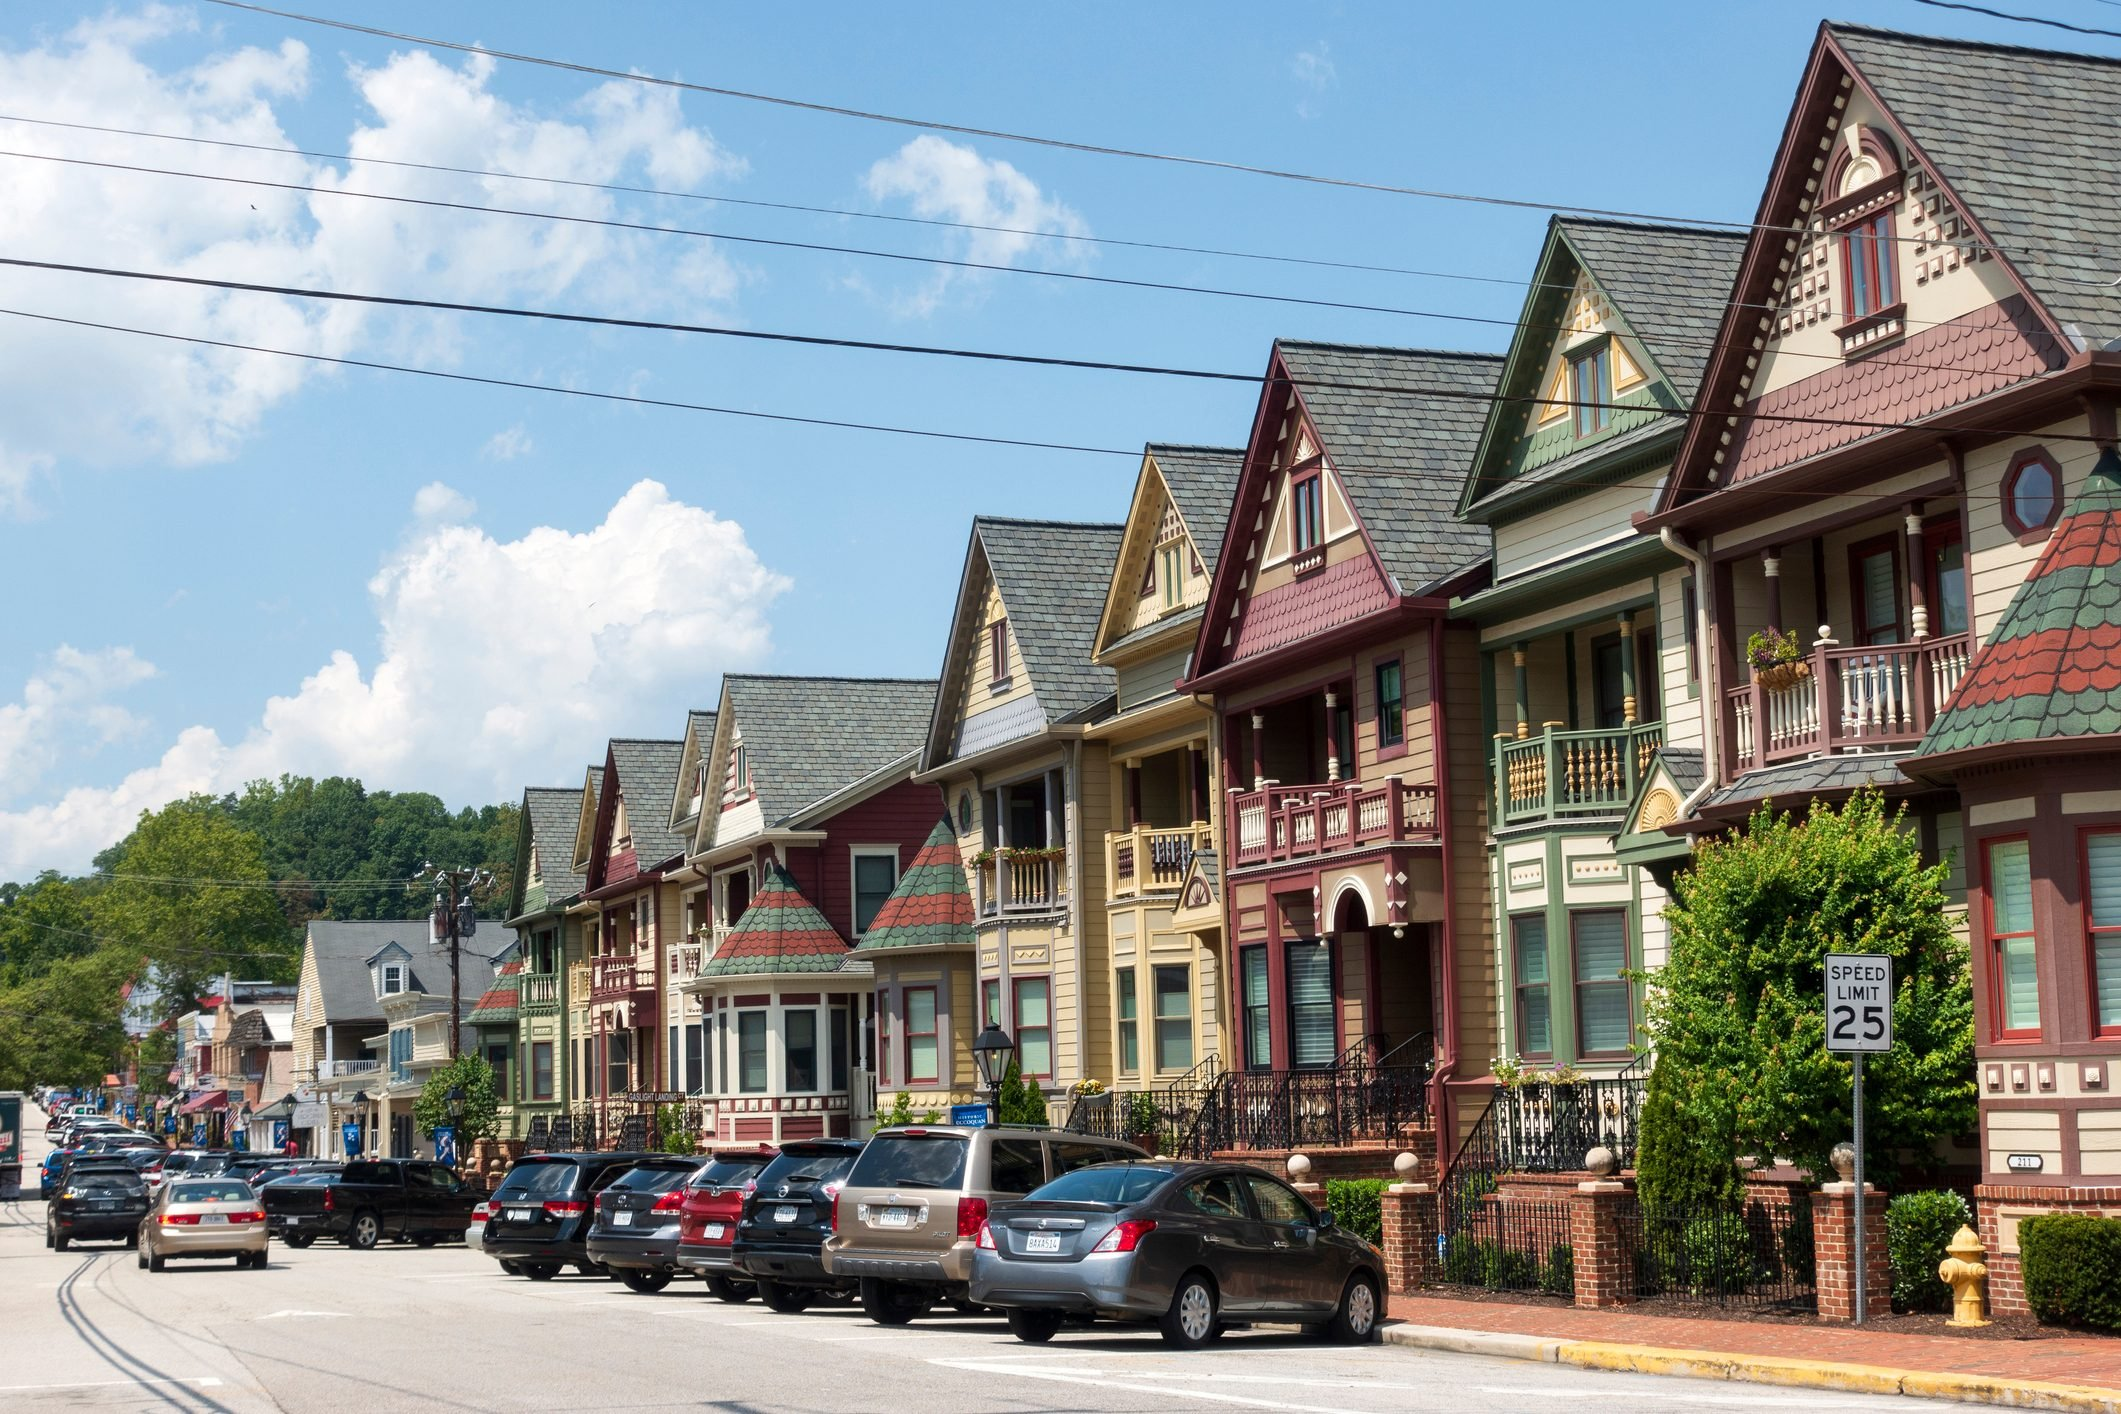 Traffic at downtown historic Occoquan